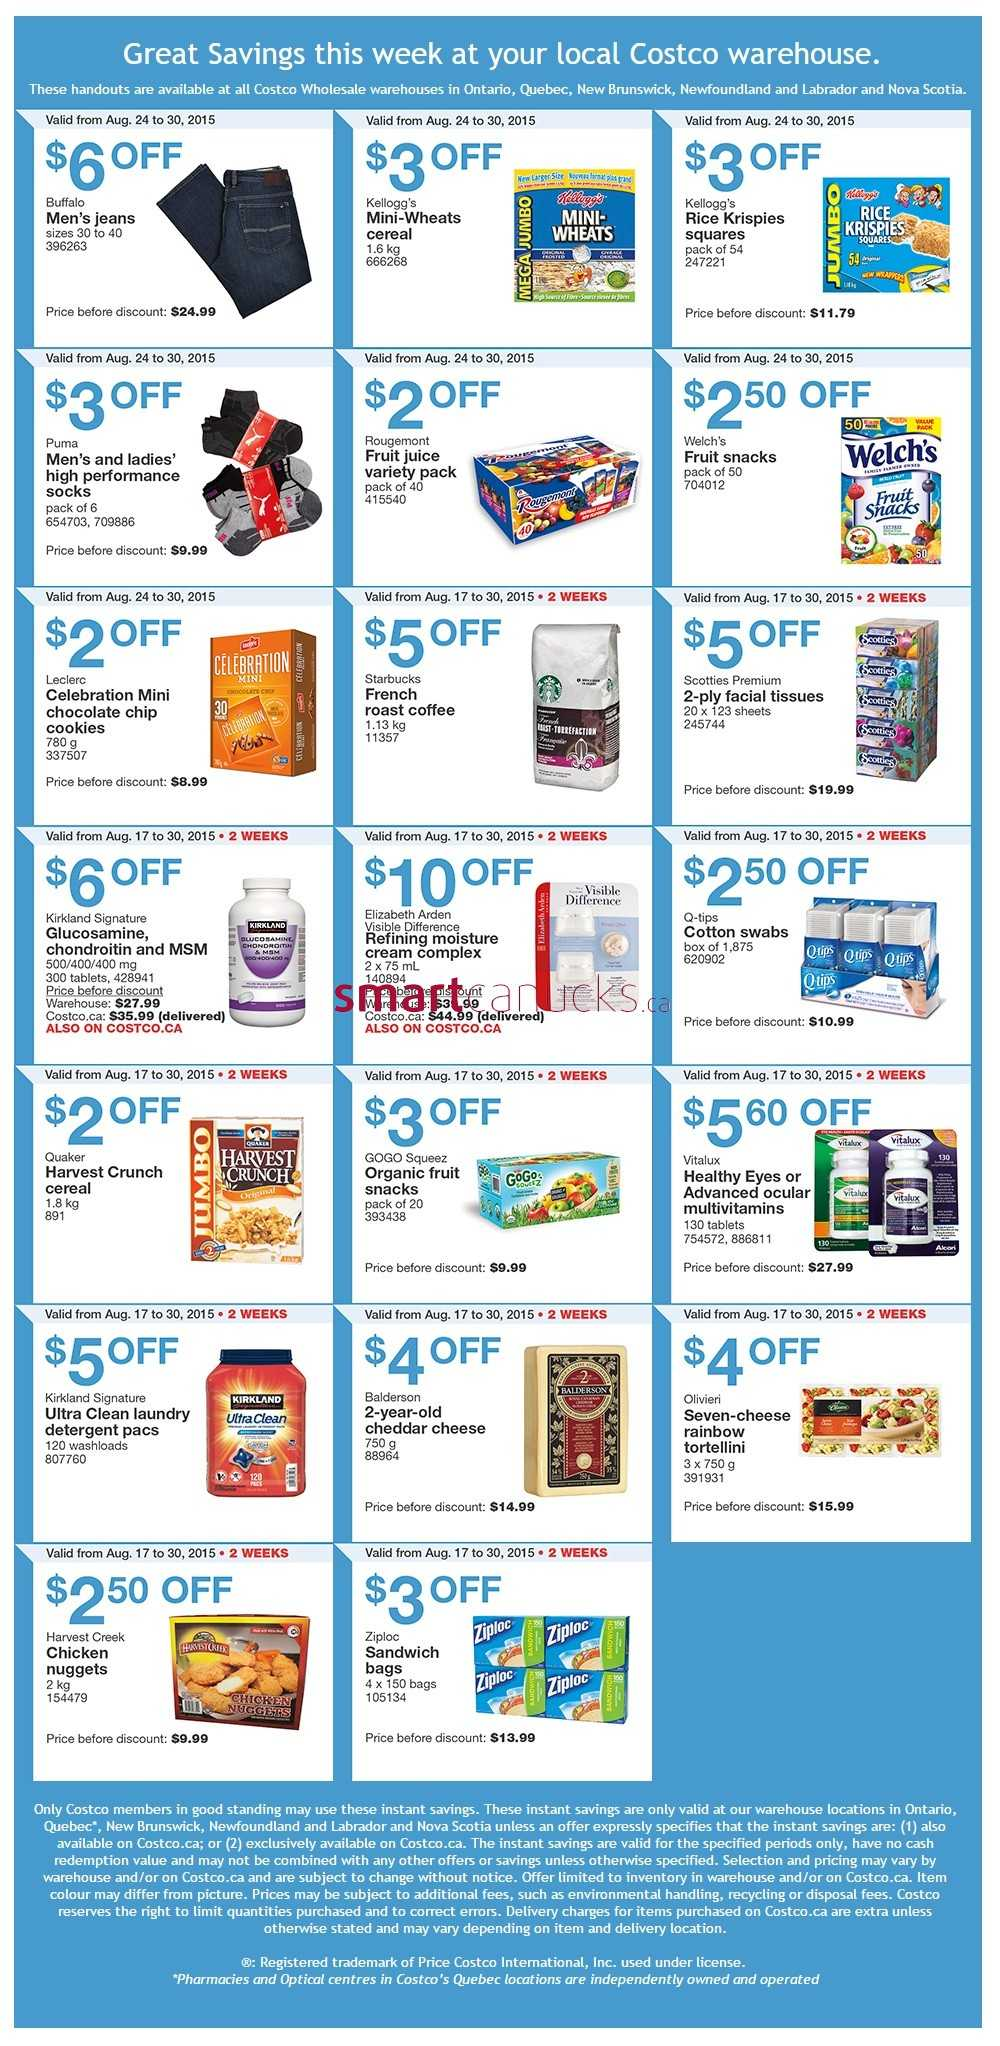 Costco Weekly Savings August 24 to 30